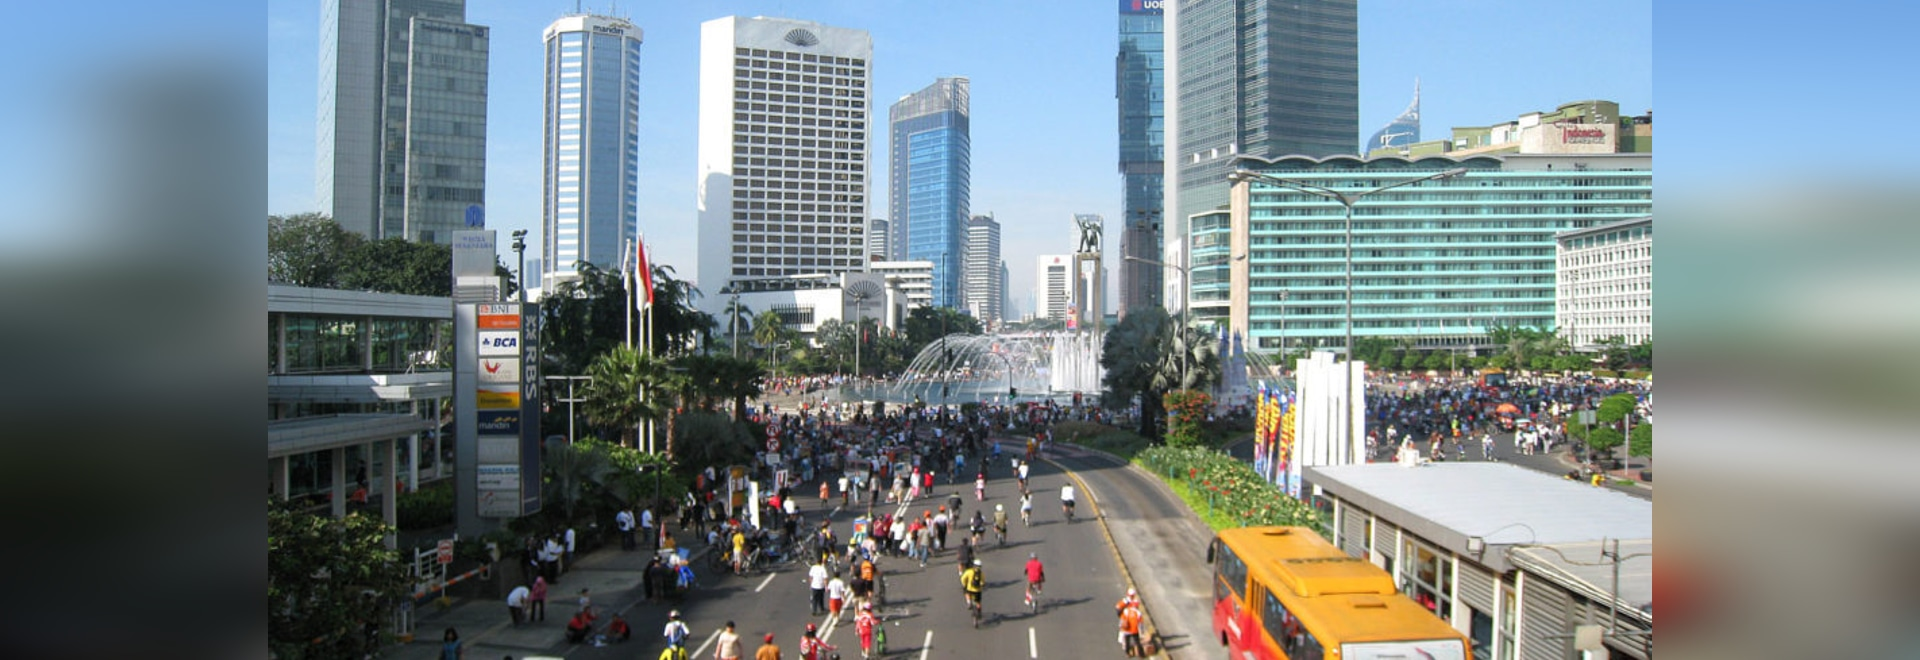 After being founded nearly 500 years ago, Jakarta will soon no longer be the capital of Indonesia.